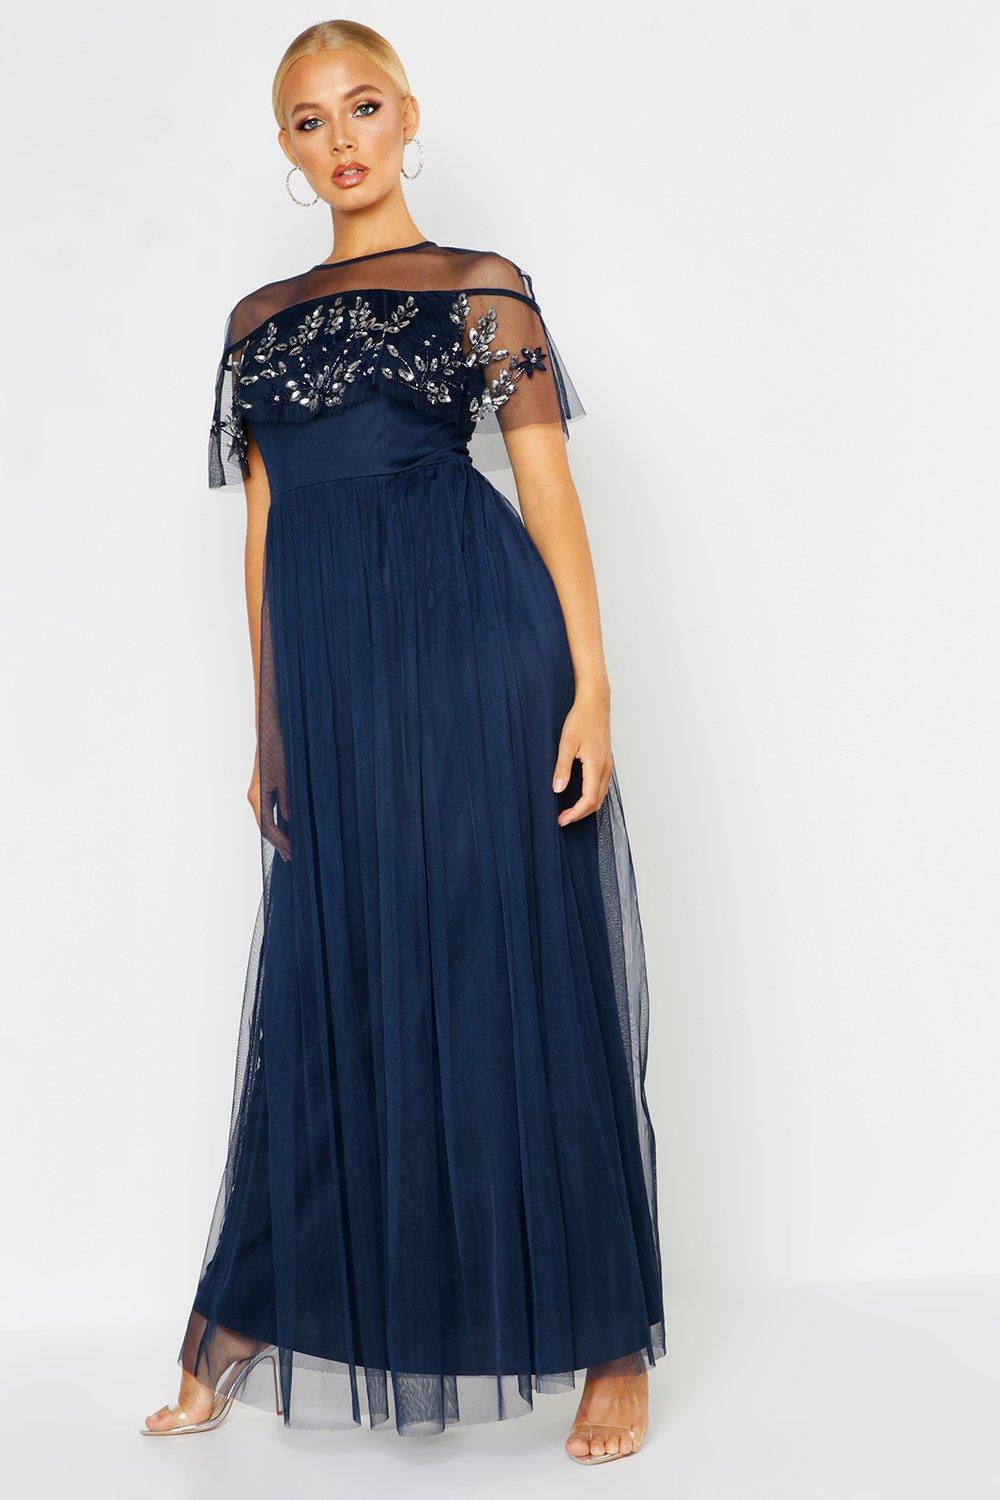 1940s Formal Dresses, Evening Gowns History Embellished Cape Skater Maxi Dress $90.00 AT vintagedancer.com